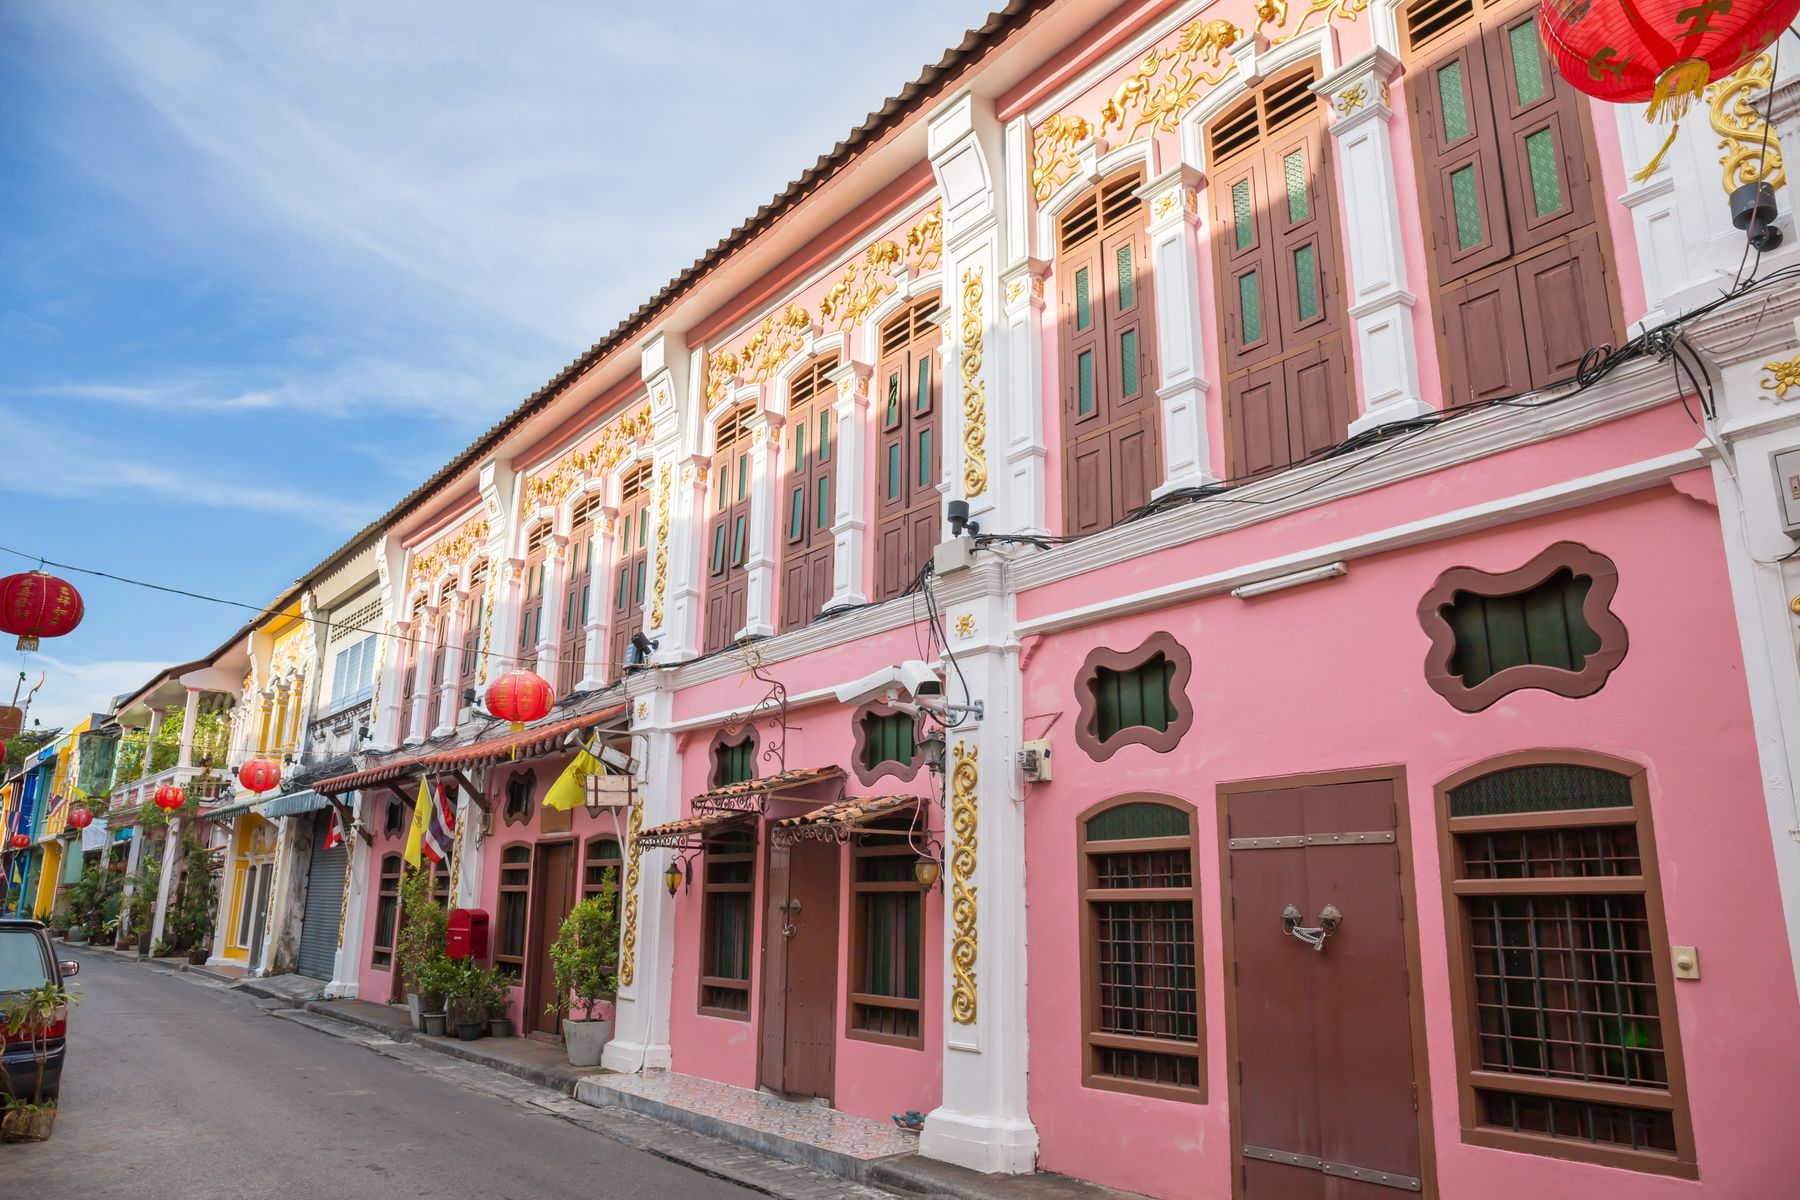 colonial architecture in the old town of Phuket, Thailand